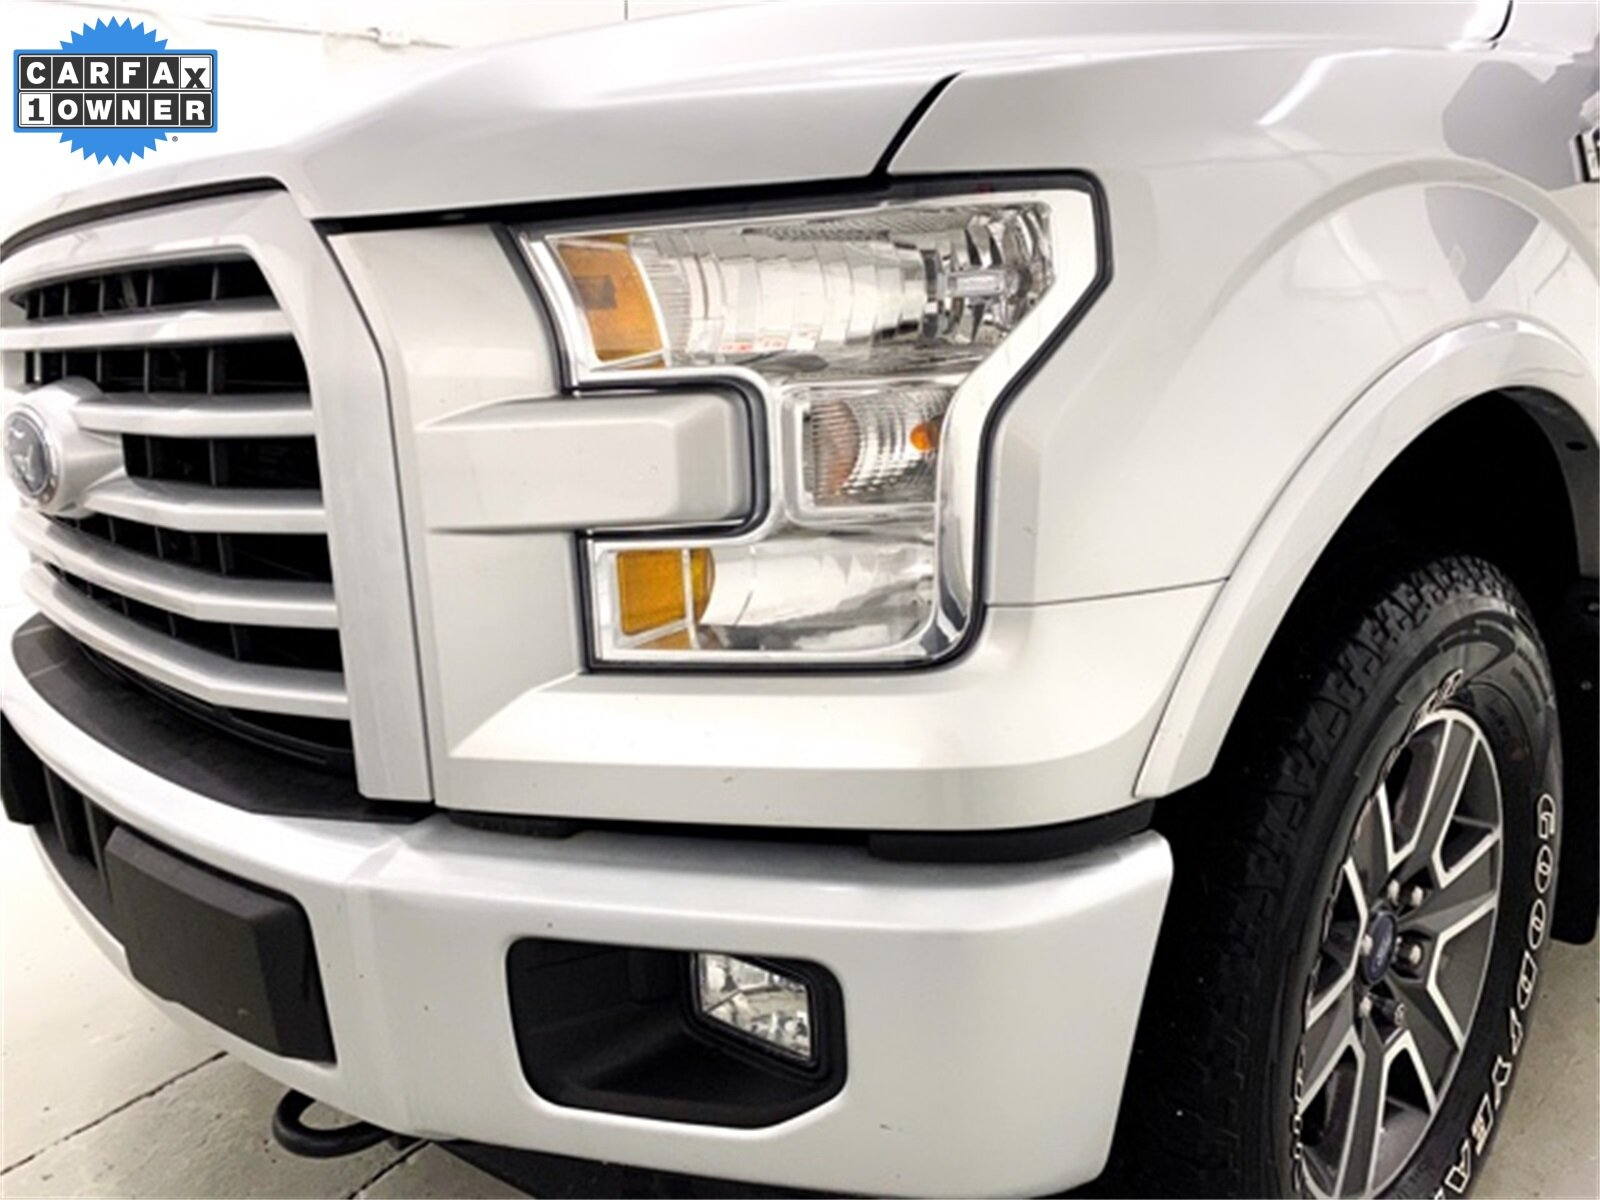 2017 Ingot Silver Metallic Ford F-150 XLT 4X4 4 Door EcoBoost 3.5L V6 GTDi DOHC 24V Twin Turbocharged Engine Automatic Truck